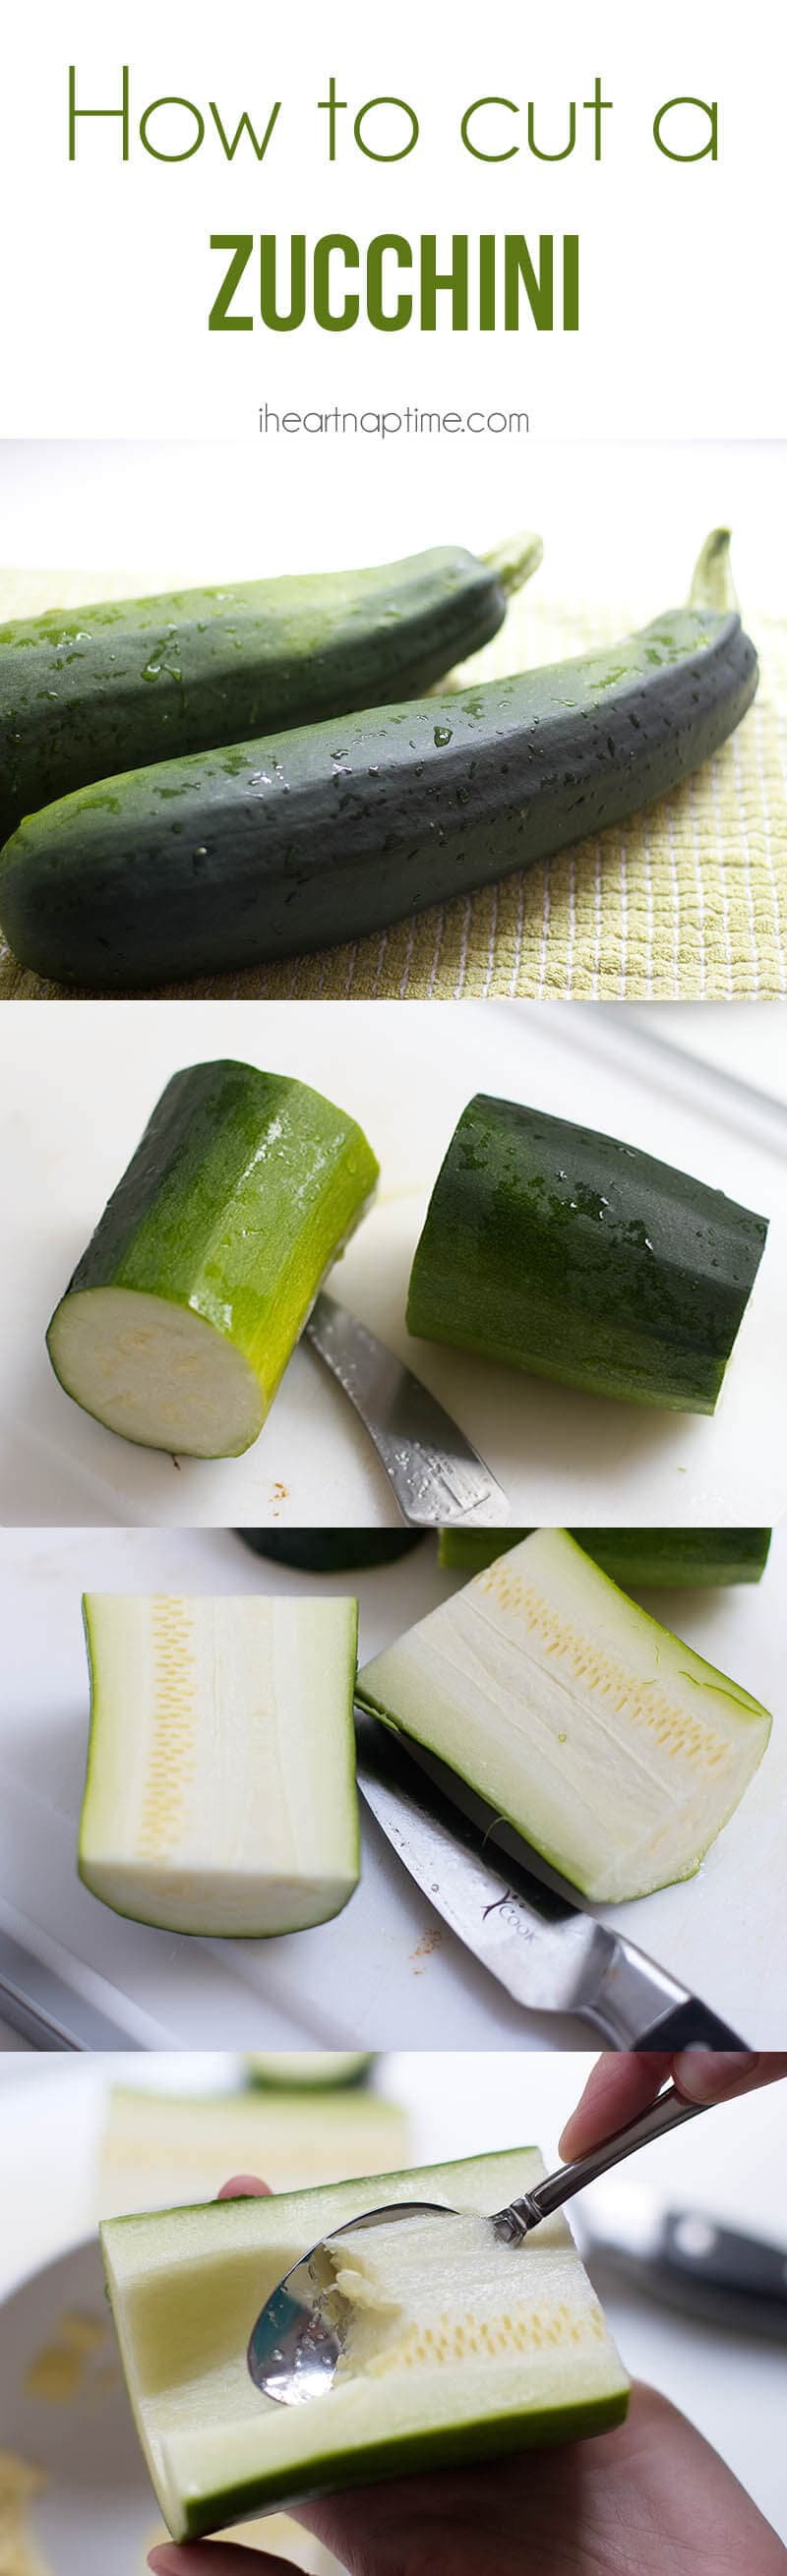 How to cut a zucchini from iheartnaptime.com #tips #cooking